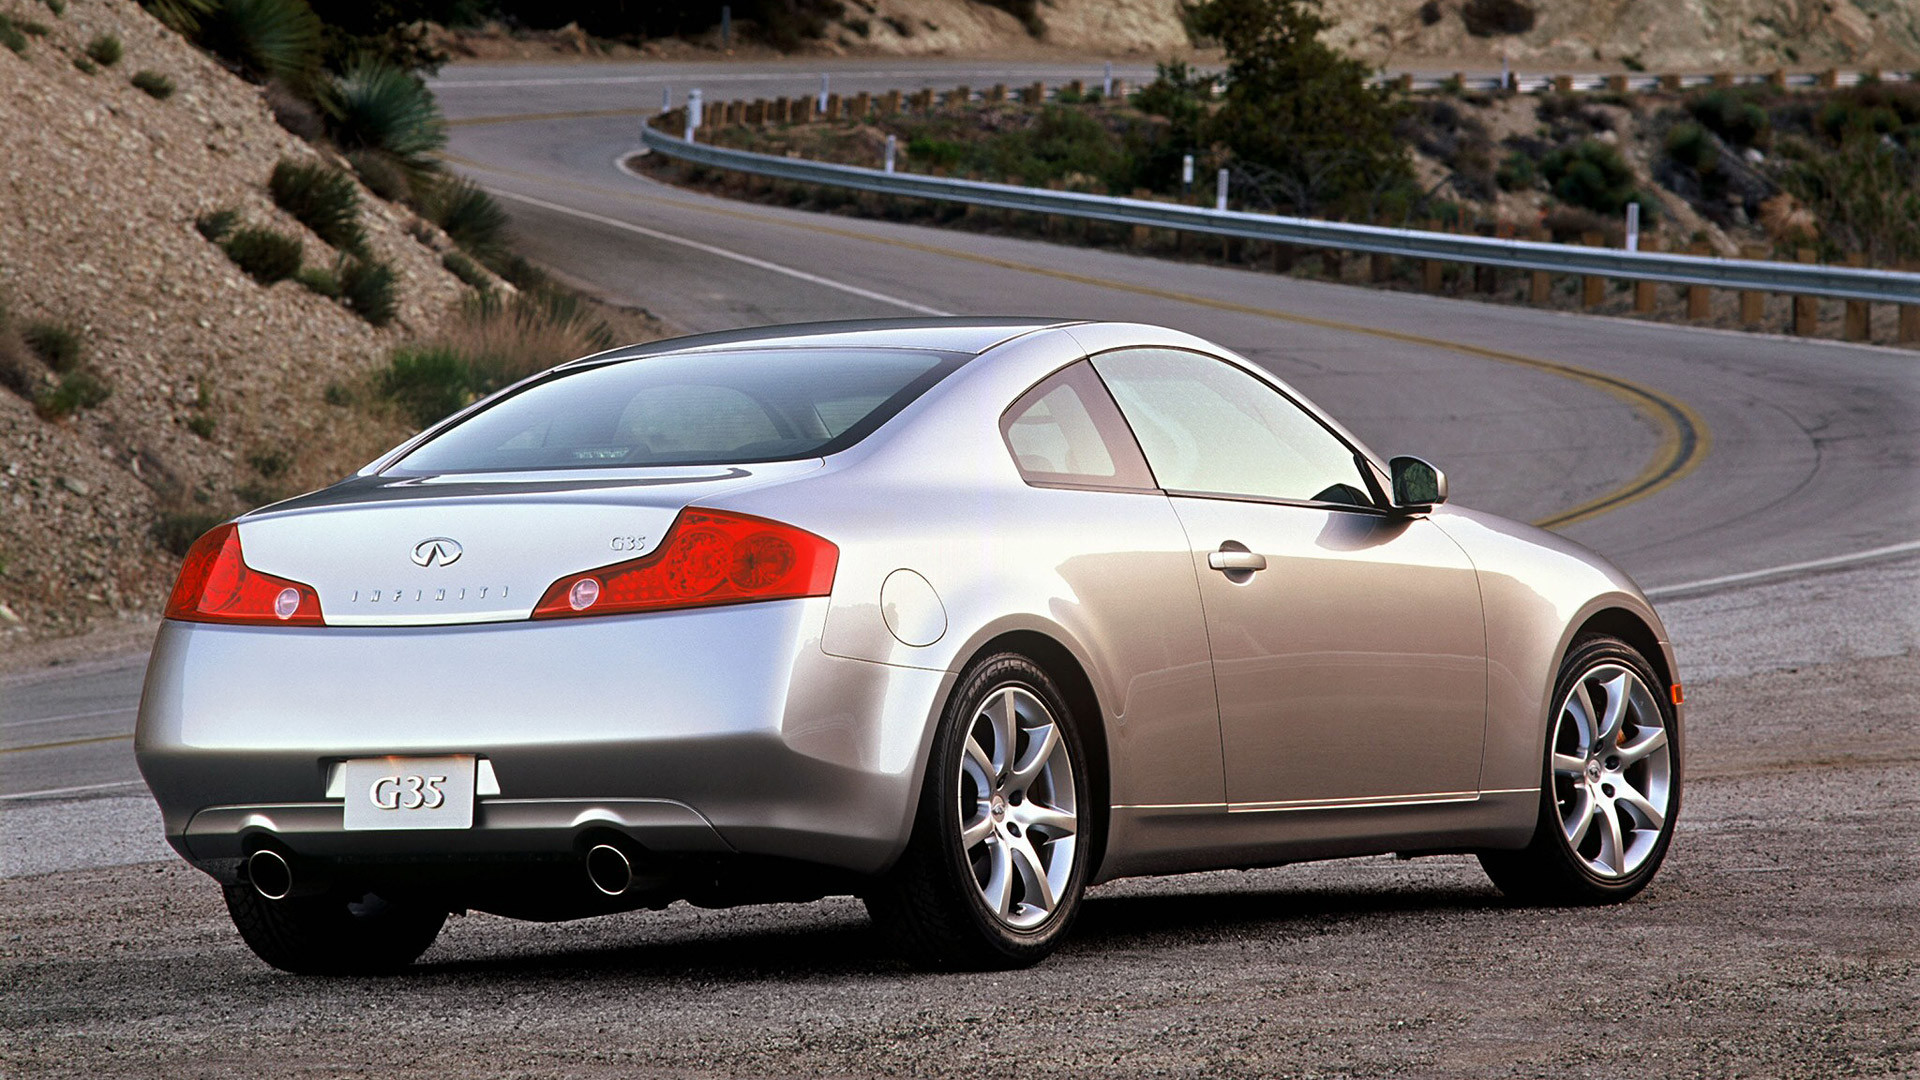 1920x1080 2002 Infiniti G35 Coupe picture